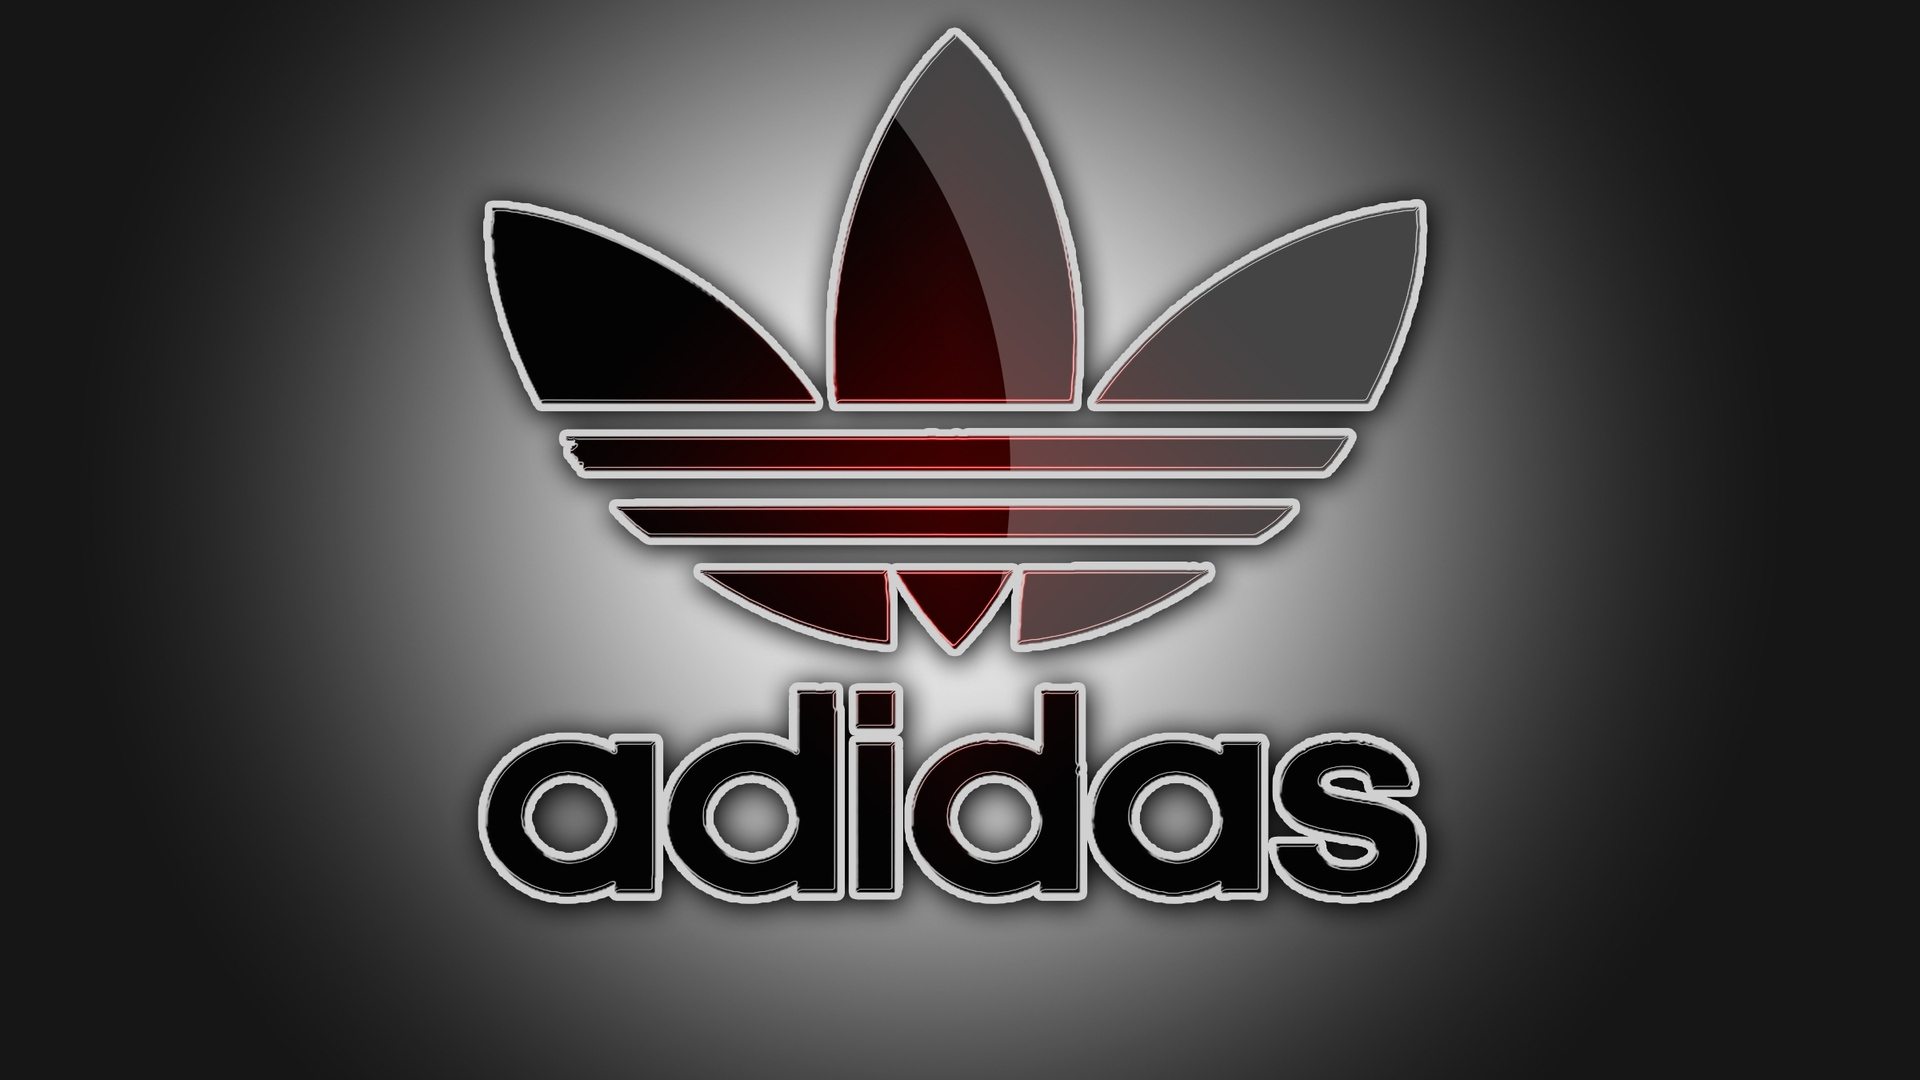 Adidas HD Black Logo Wallpaper Desktop Images Download 1920x1080